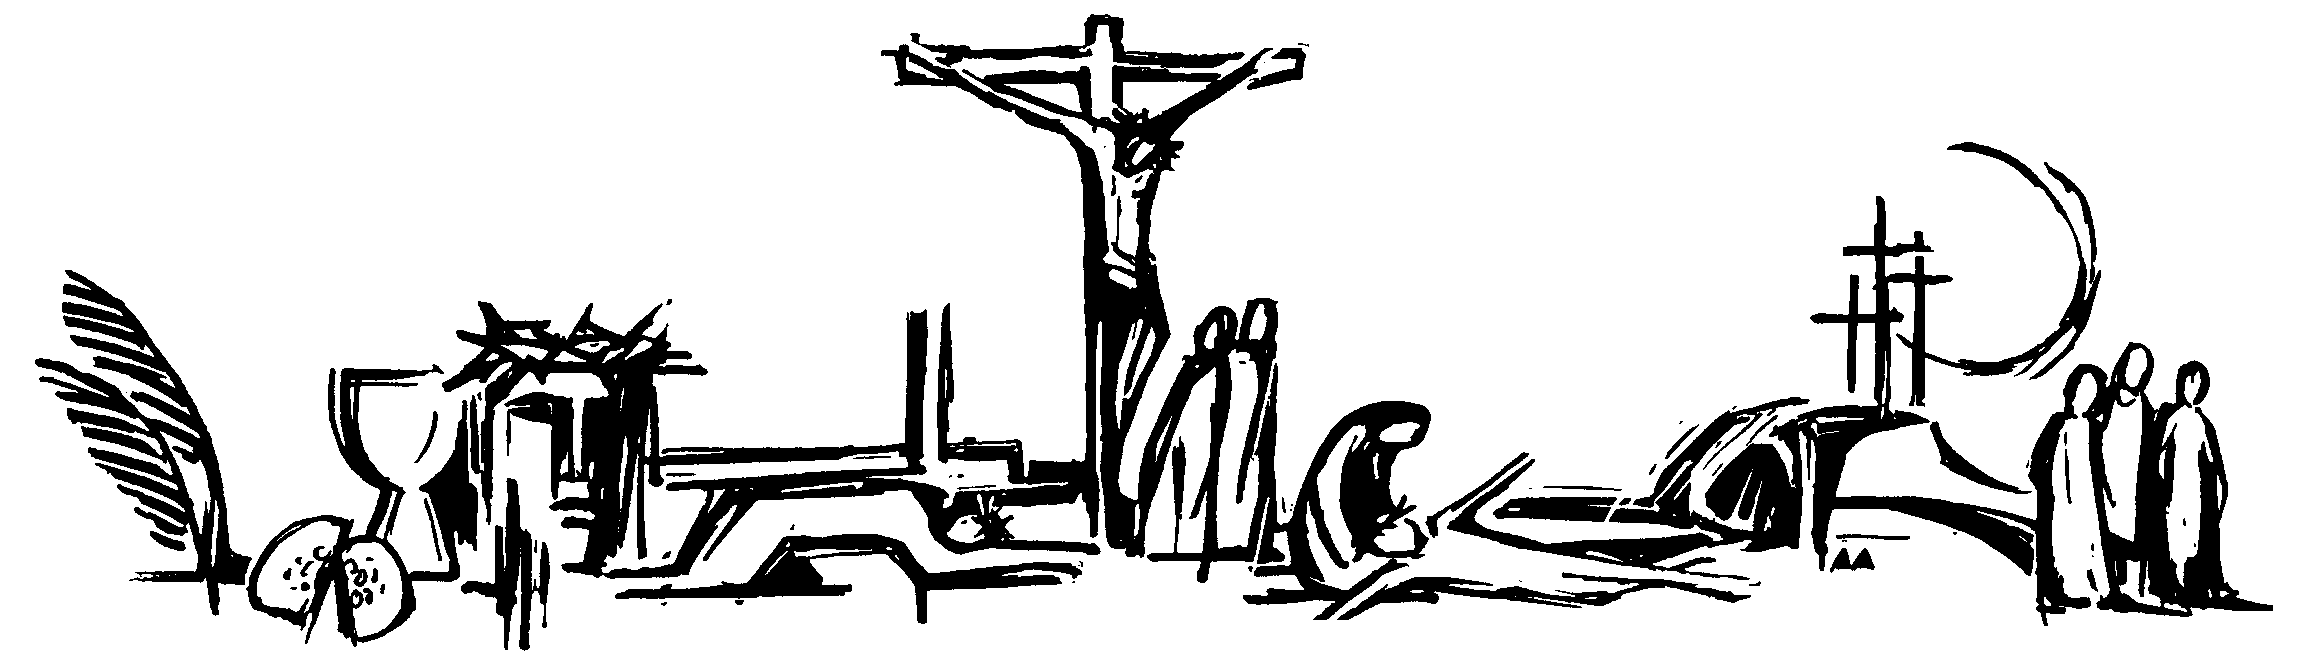 Free Lent Clipart Black And White, Download Free Clip Art.